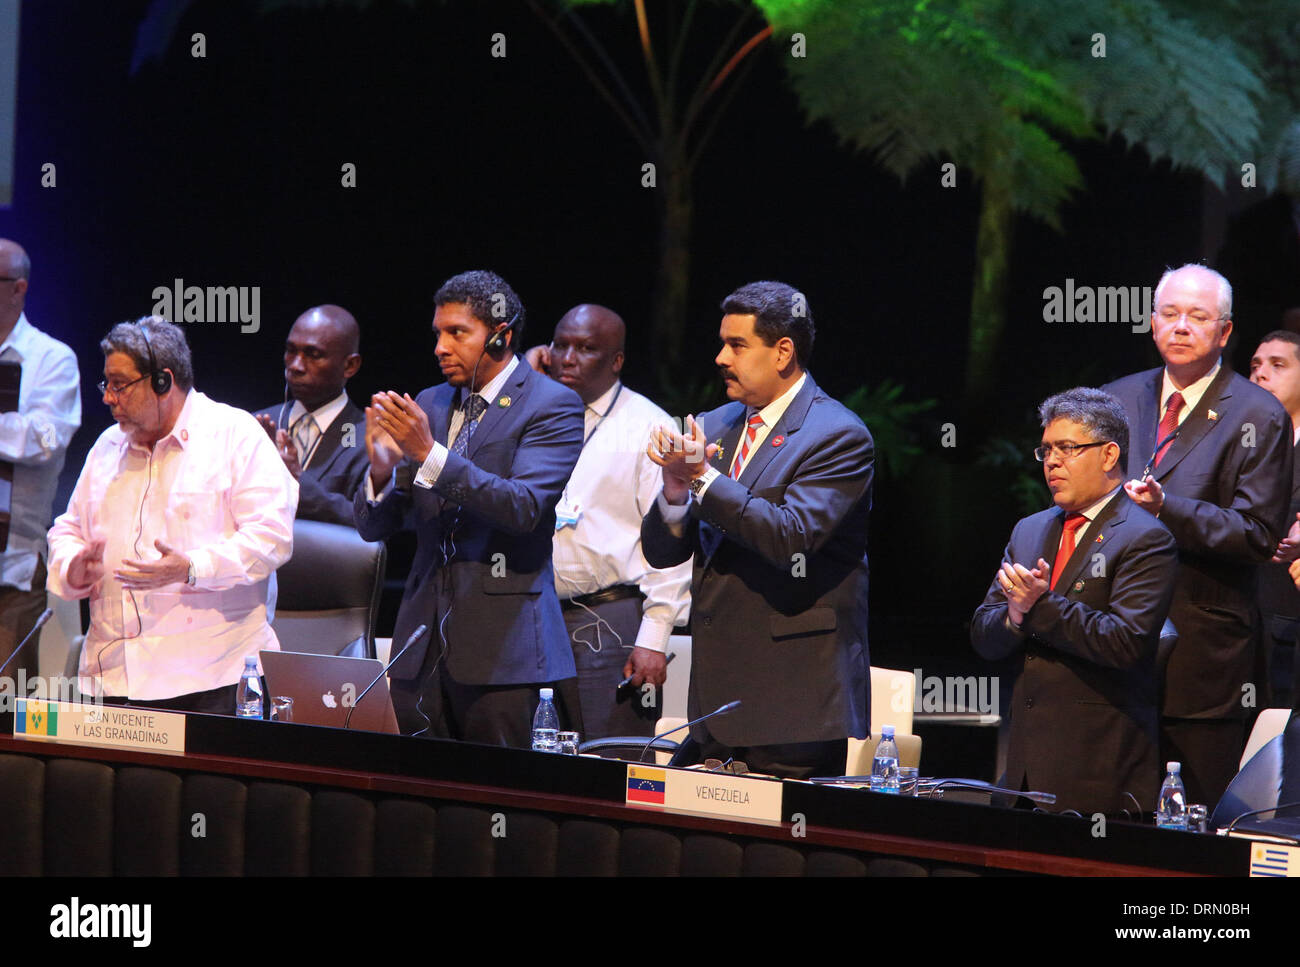 Havana, Cuba. 29th Jan, 2014. President of Venezuela, Nicolas Maduro (2nd R, front) attends the second Summit of The Community of Latin American and Caribbean States (CELAC), in Havana, Cuba, on Jan. 29, 2014. The CELAC has declared the region a nuclear-free zone, Cuban leader Raul Castro announced Wednesday on the final day of the summit in Havana. Credit:  AVN/Xinhua/Alamy Live News - Stock Image